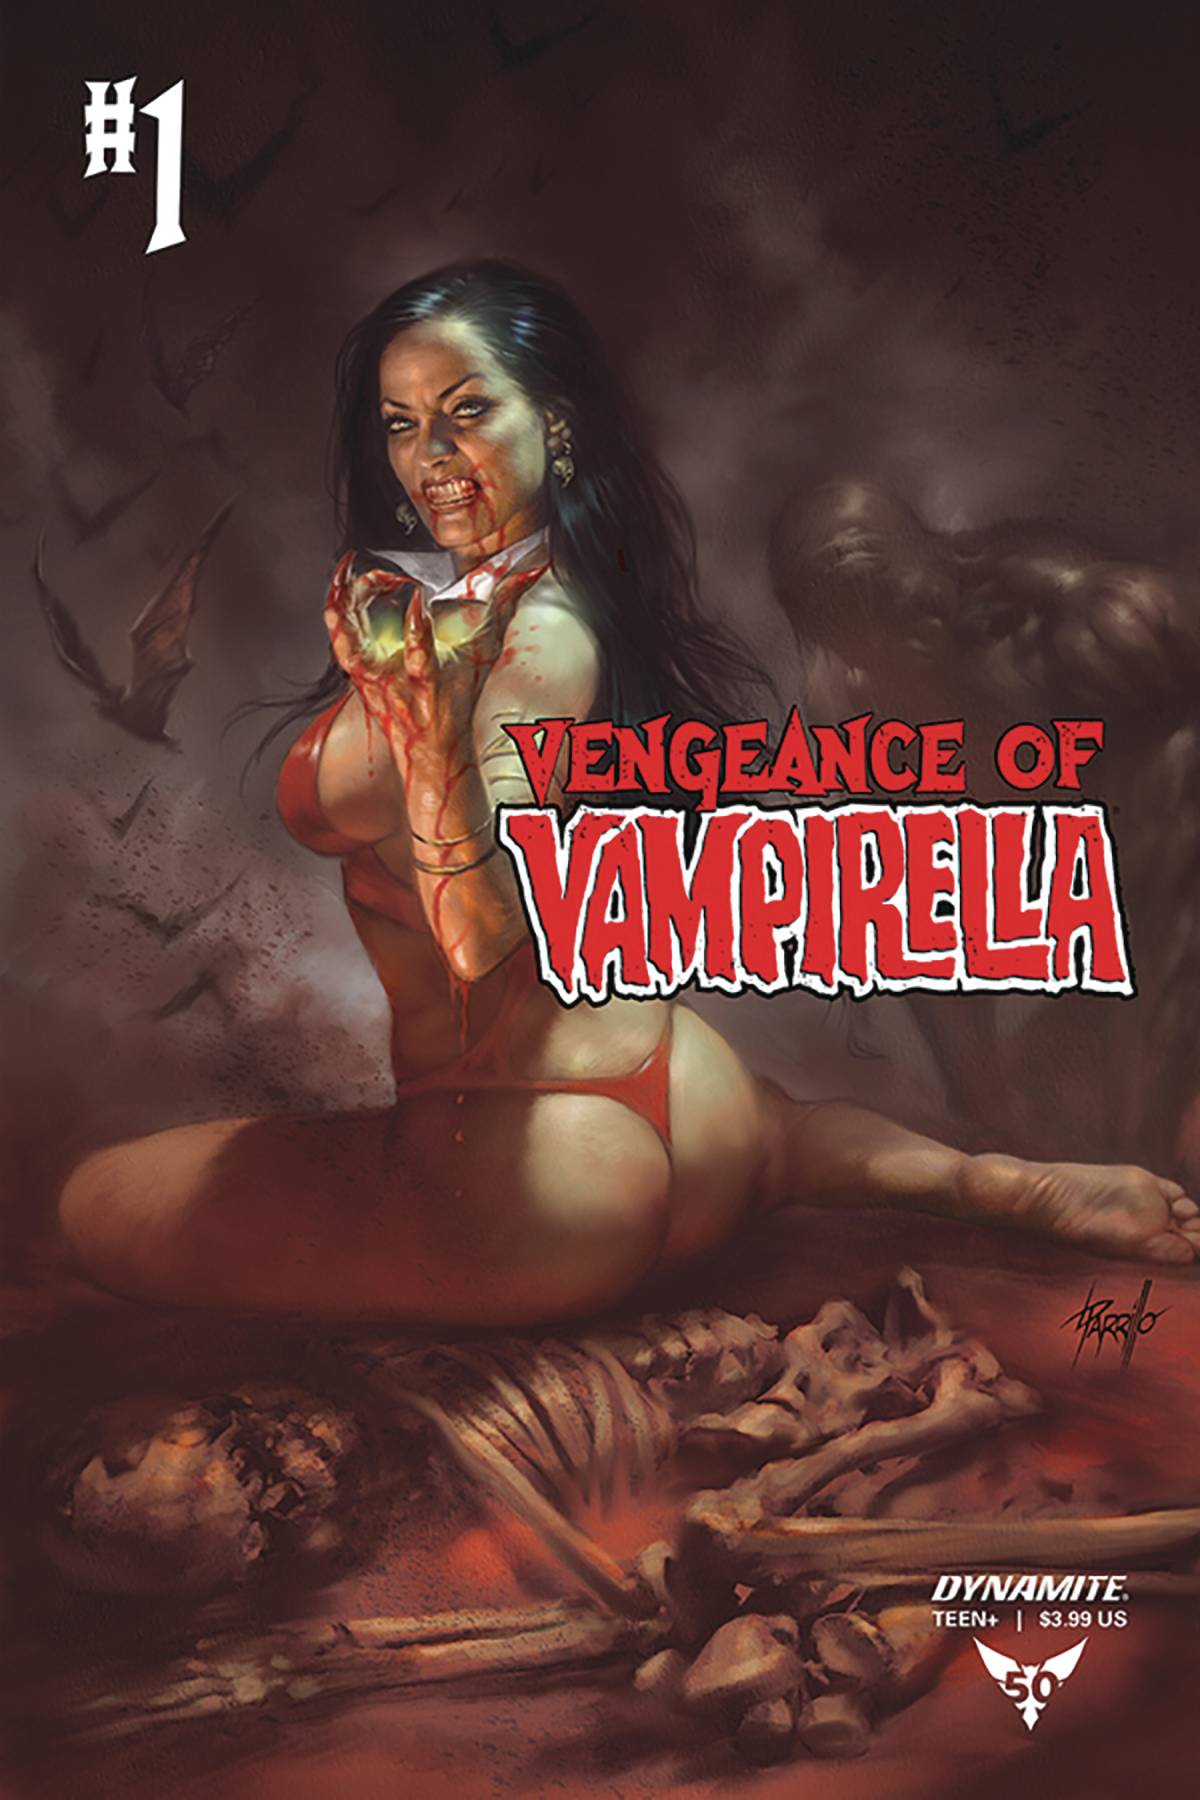 VENGEANCE OF VAMPIRELLA 1 CVR D PARRILLO.jpg